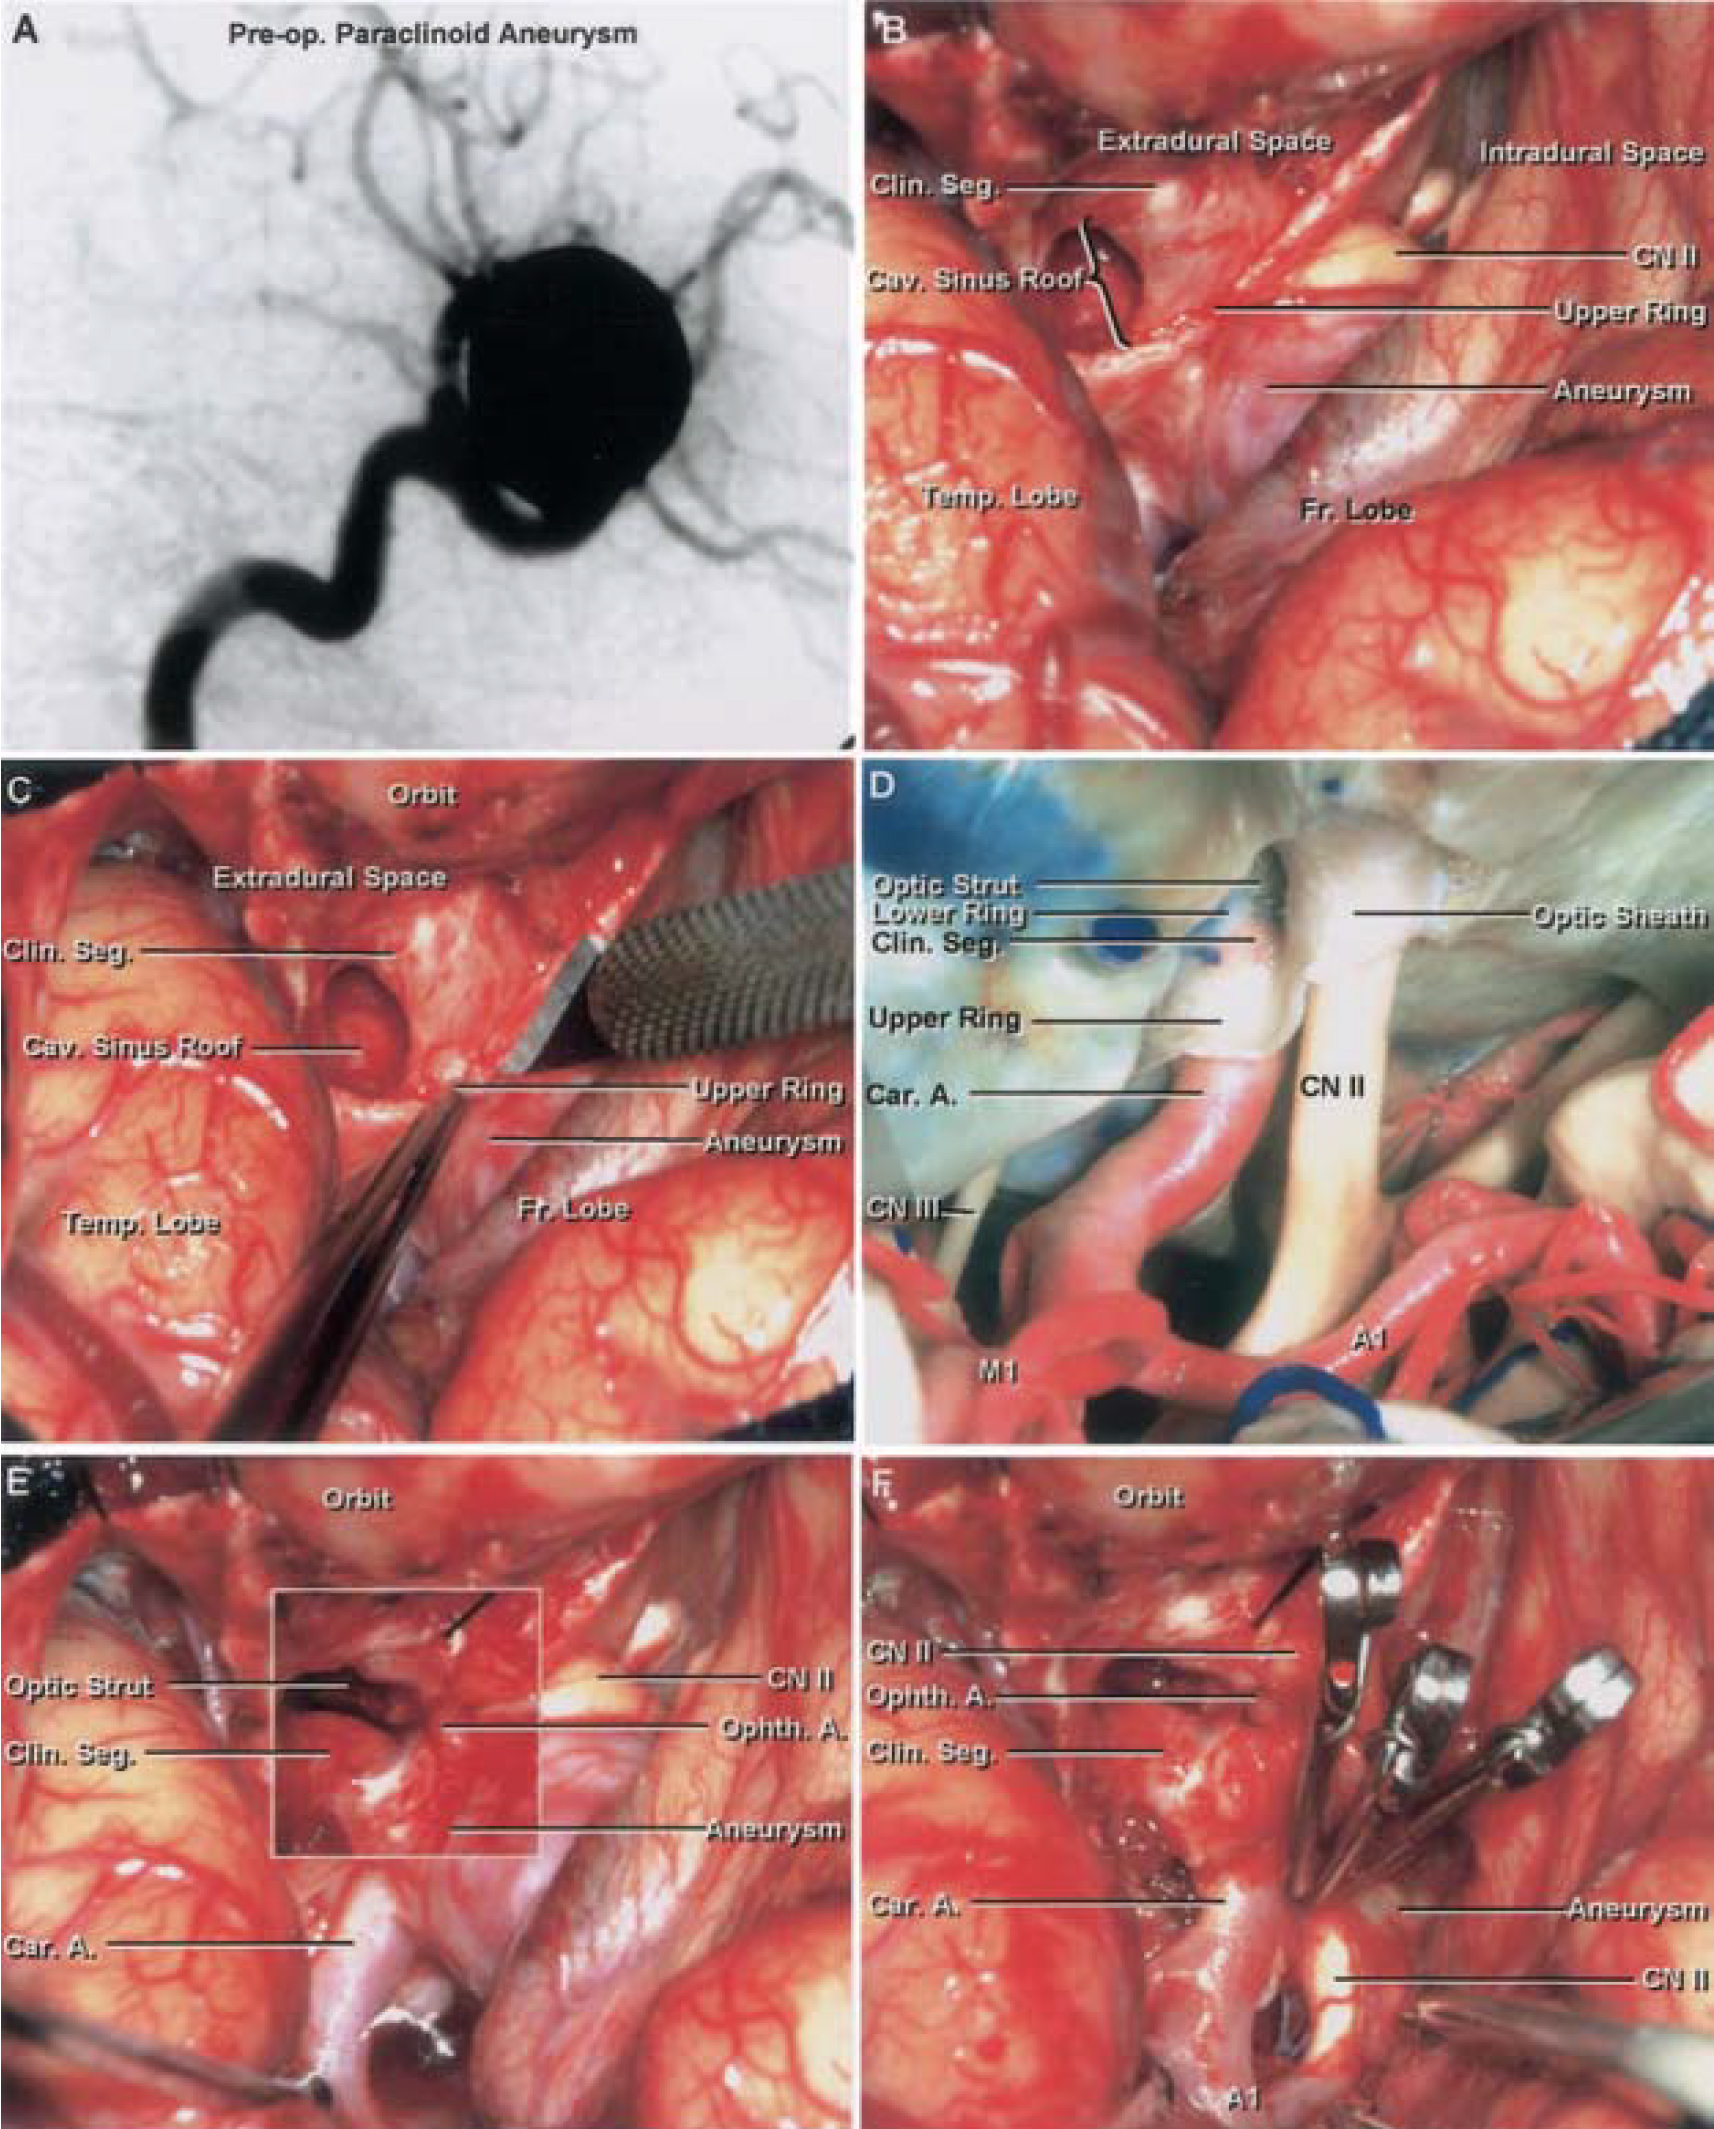 Figure 8 (A–F). A–F, photographs illustrating the transcavernous approach to an upwardly directed paraclinoid aneurysm. G–L, photographs illustrating the transcavernous approach to a downwardly directed paraclinoid aneurysm. A, oblique preoperative angiogram showing a large upwardly directed paraclinoid aneurysm on the left internal carotid artery. B, view of completed left orbitozygomatic craniotomy and pretemporal approach showing the sylvian fissure opened, the anterior clinoid removed, and the anterior portion of the roof of the cavernous sinus exposed. The extradural and intradural spaces are exposed. The large upwardly directed paraclinoid aneurysm elevates the optic nerve and adjacent part of the frontal lobe. C, view showing the upper ring and the optic sheath opened to aid in exposure of the aneurysm neck. D, anatomic dissection showing the structures exposed. E, central insert showing the next stage of dissection of the aneurysm neck has been overlaid on the corresponding area on B. The upper ring and the optic sheath have been opened, and the aneurysm and the ophthalmic artery have been exposed. F, view showing the aneurysm neck isolated and clipped using three straight clips. A., artery; A1, A1 segment of the anterior cerebral artery; Car., carotid; Cav., cavernous; CN, cranial nerve; Clin., clinoidal; Fr., frontal; M1, M1 segment of the middle cerebral artery; Op., operative; Ophth., ophthalmic; Seg., segment; Sphen., sphenoid; Temp., temporal. (Images courtesy of AL Rhoton, Jr.)